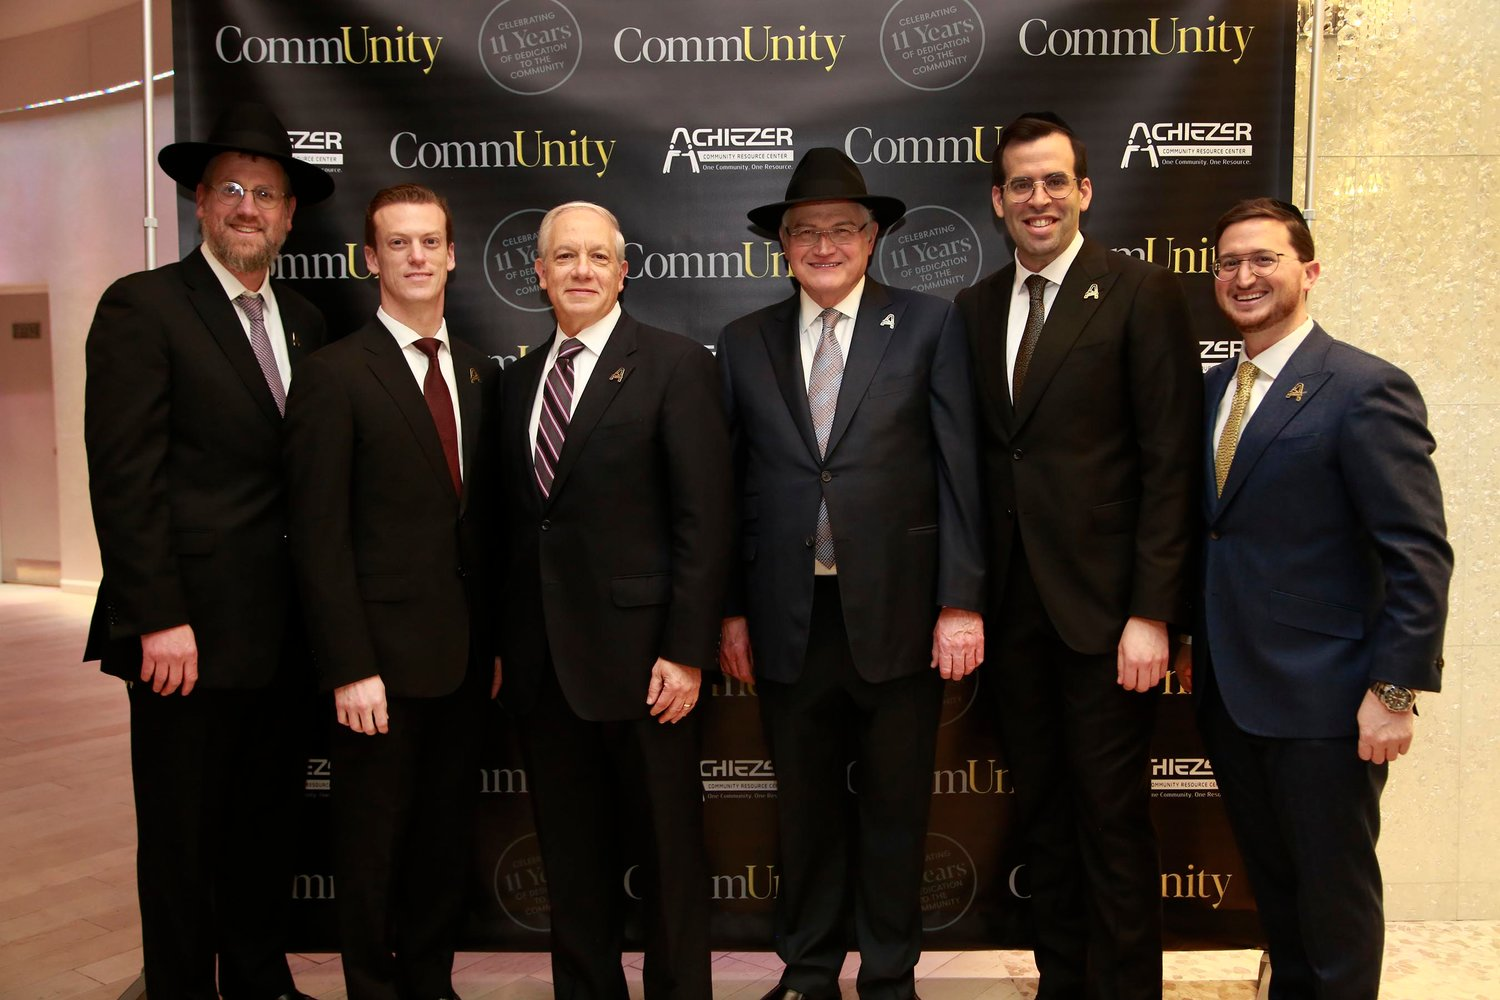 Rabbi Yossy Ungar, left, Dr. Ari Hoschander, Dr. Martin Kessler, Ronald Lowenger, Rabbi Boruch Bender and Shalom Jaroslawicz at the Achiezer gala in Atlantic Beach on Jan. 6.